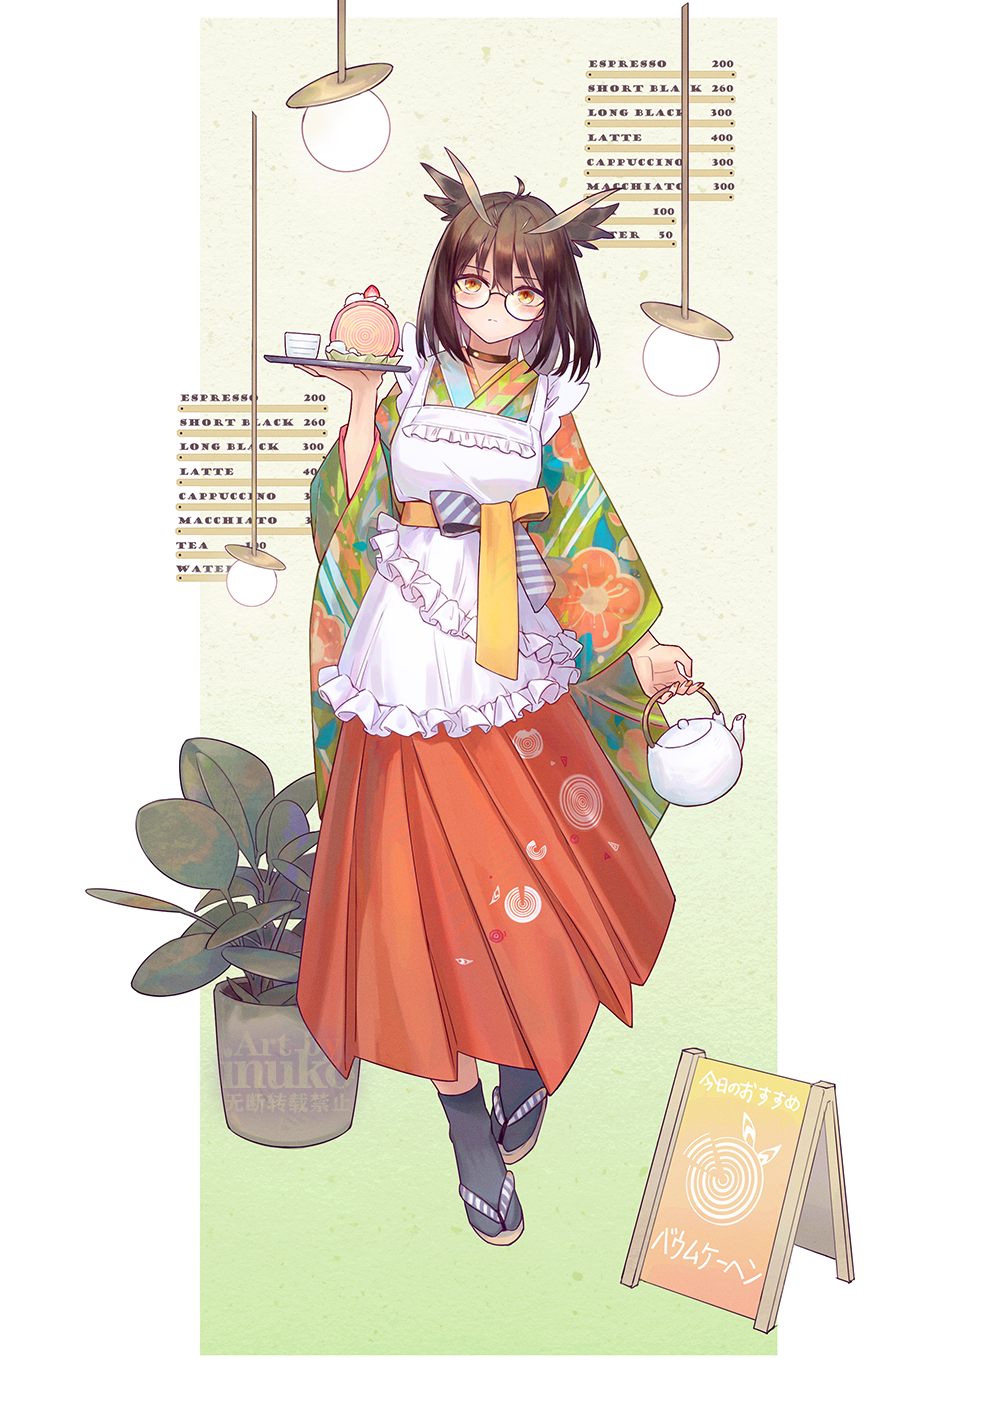 1girl apron arknights artist_name bangs black_legwear border cake cake_slice choker commentary_request cup eyebrows_visible_through_hair food glasses green_background hair_between_eyes hanging_light highres holding holding_teapot holding_tray long_sleeves menu_board plant potted_plant sandals sign silence_(arknights) teacup teapot tray white_border zhaitengjingcang